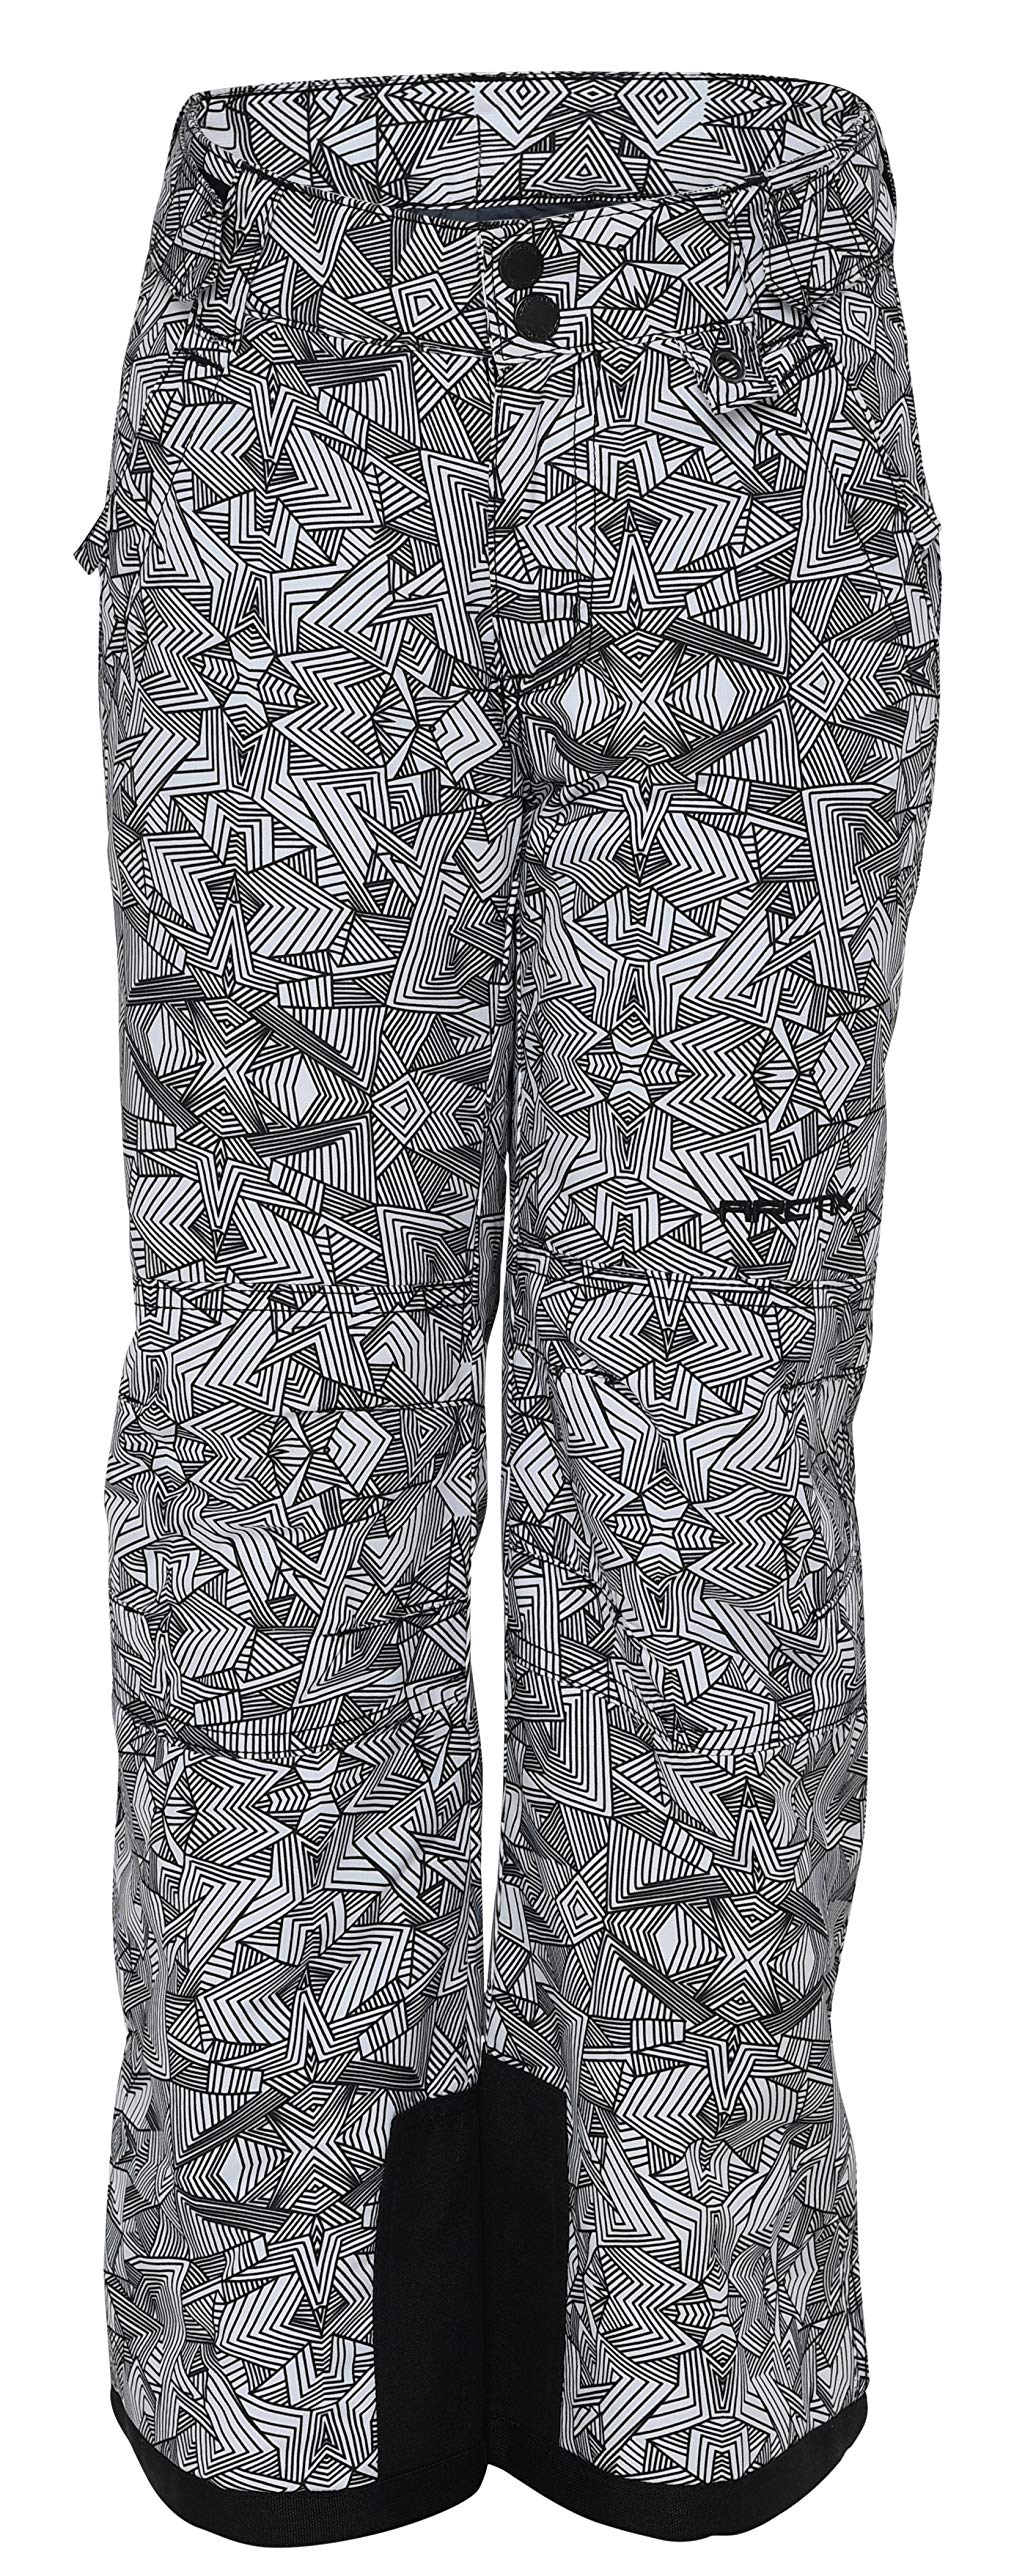 Arctix Youth Snow Pants with Reinforced Knees and Seat, Diamond Print White, X-Large by Arctix